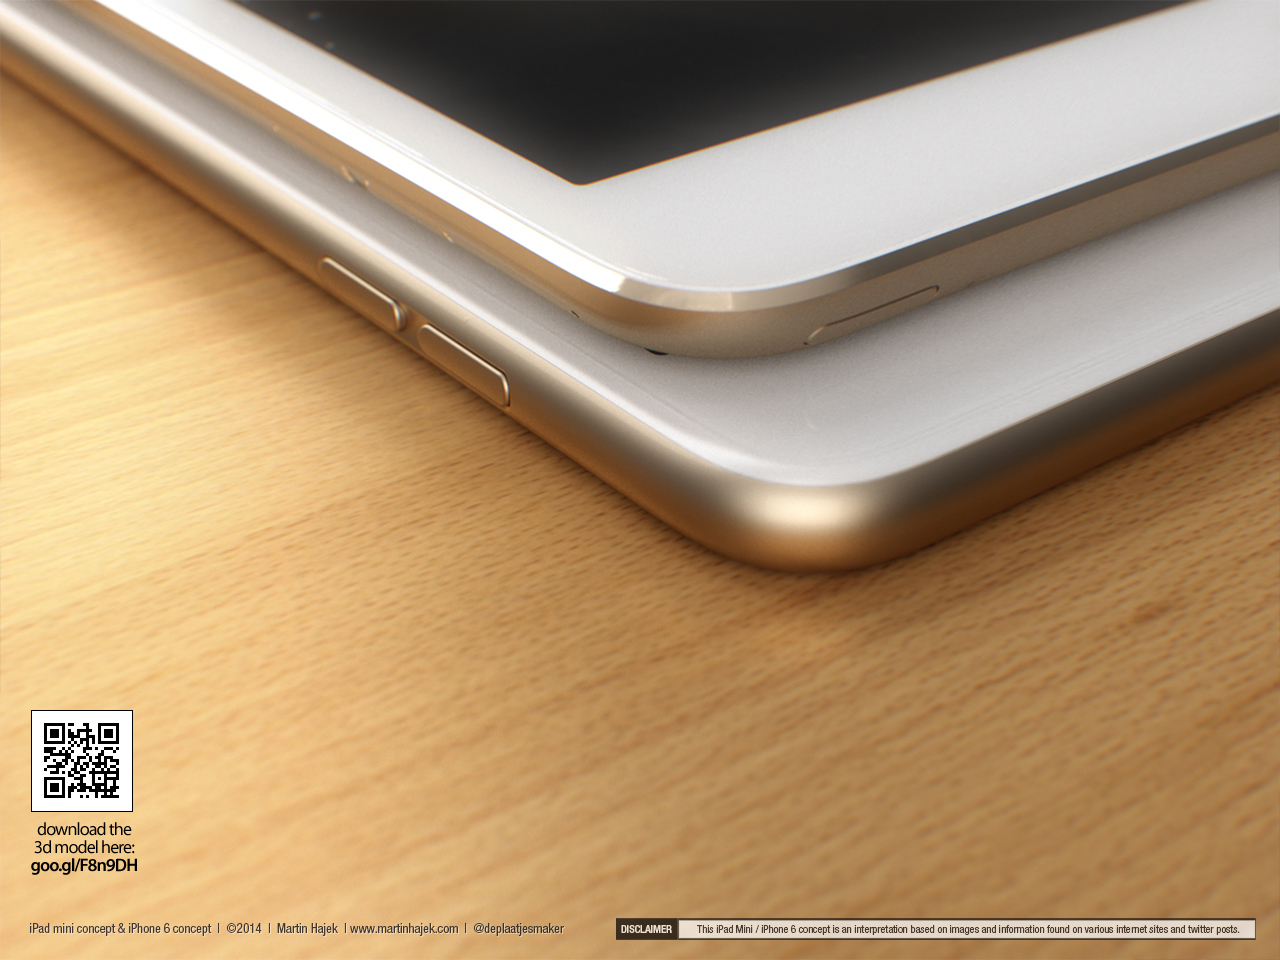 This-is-the-best-looking-iPhone-6-concept-weve-seen-so-far (10)